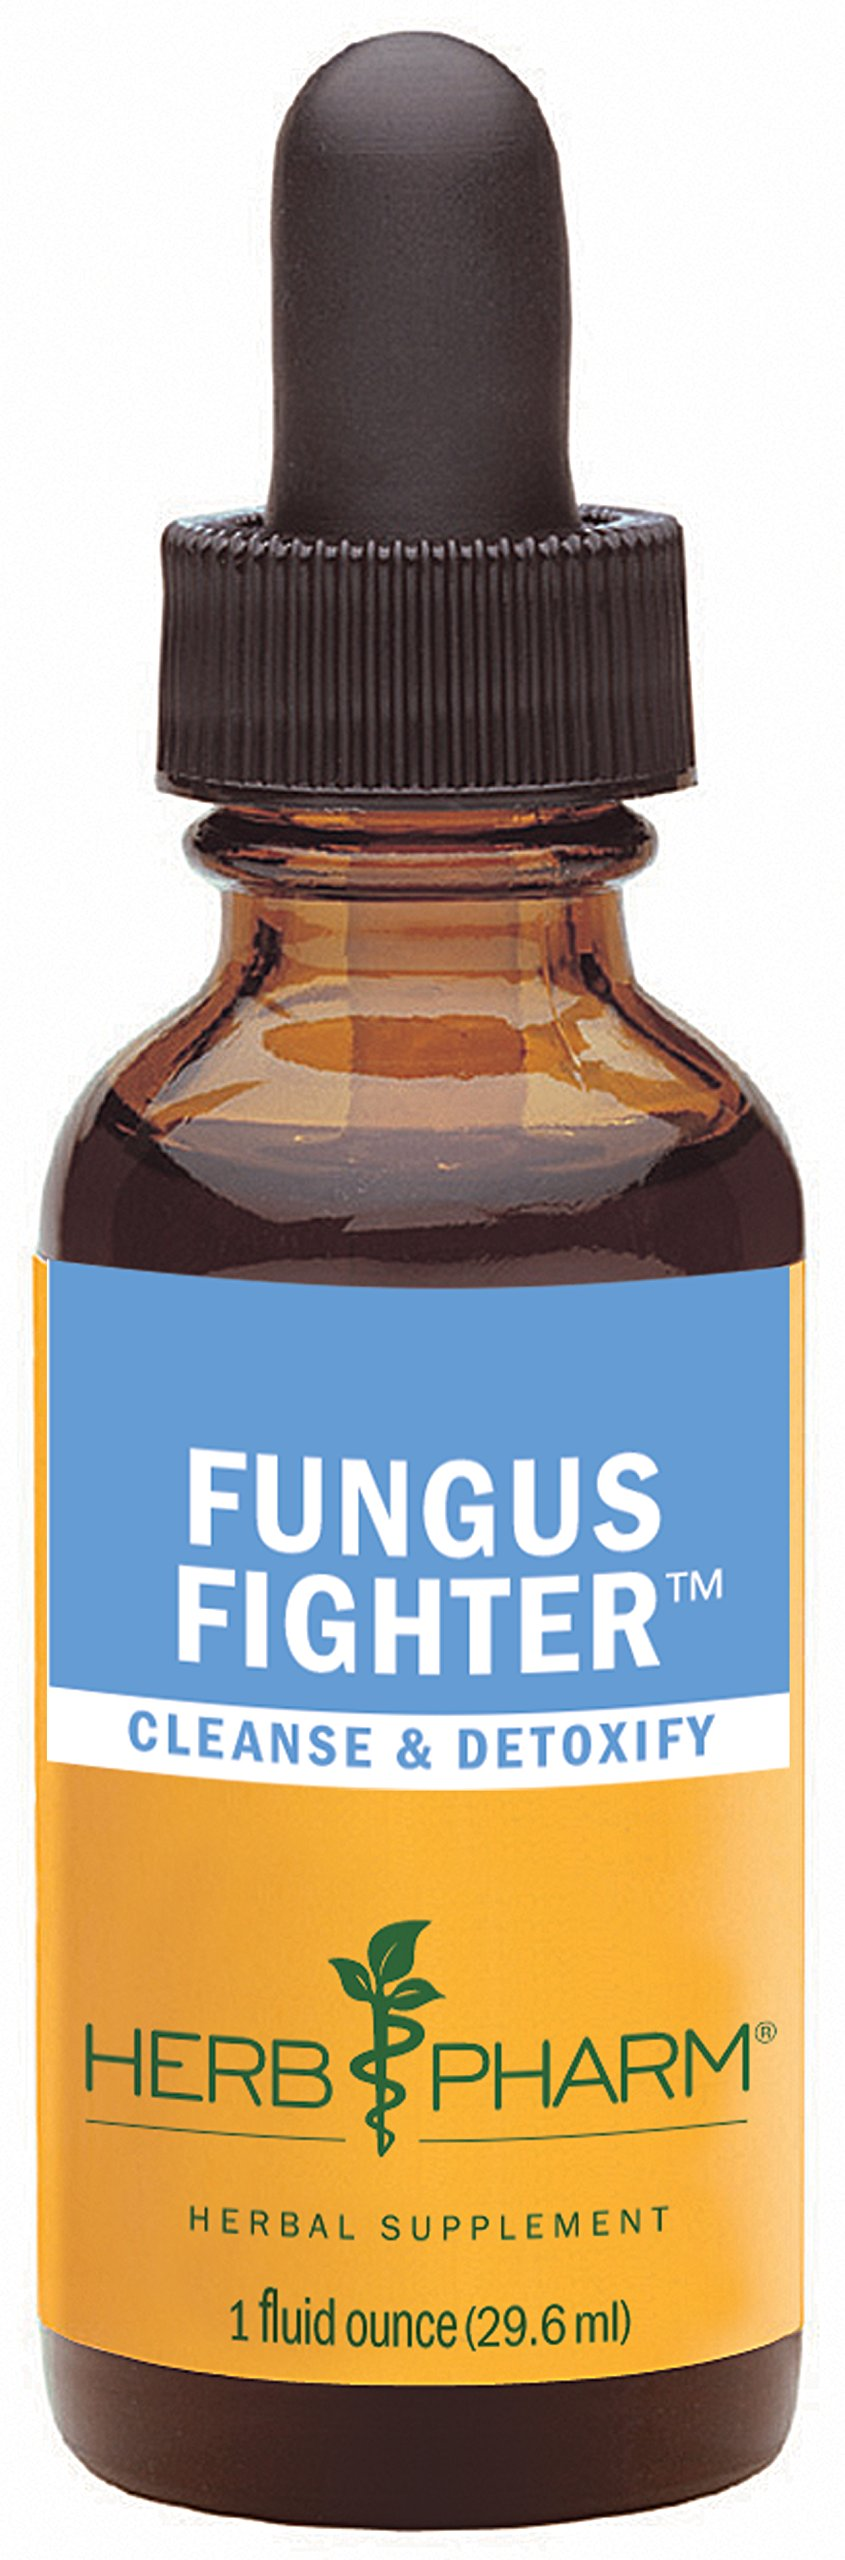 Herb Pharm Fungus Fighter Herbal Formula for Cleansing and Detoxification - 1 Ounce